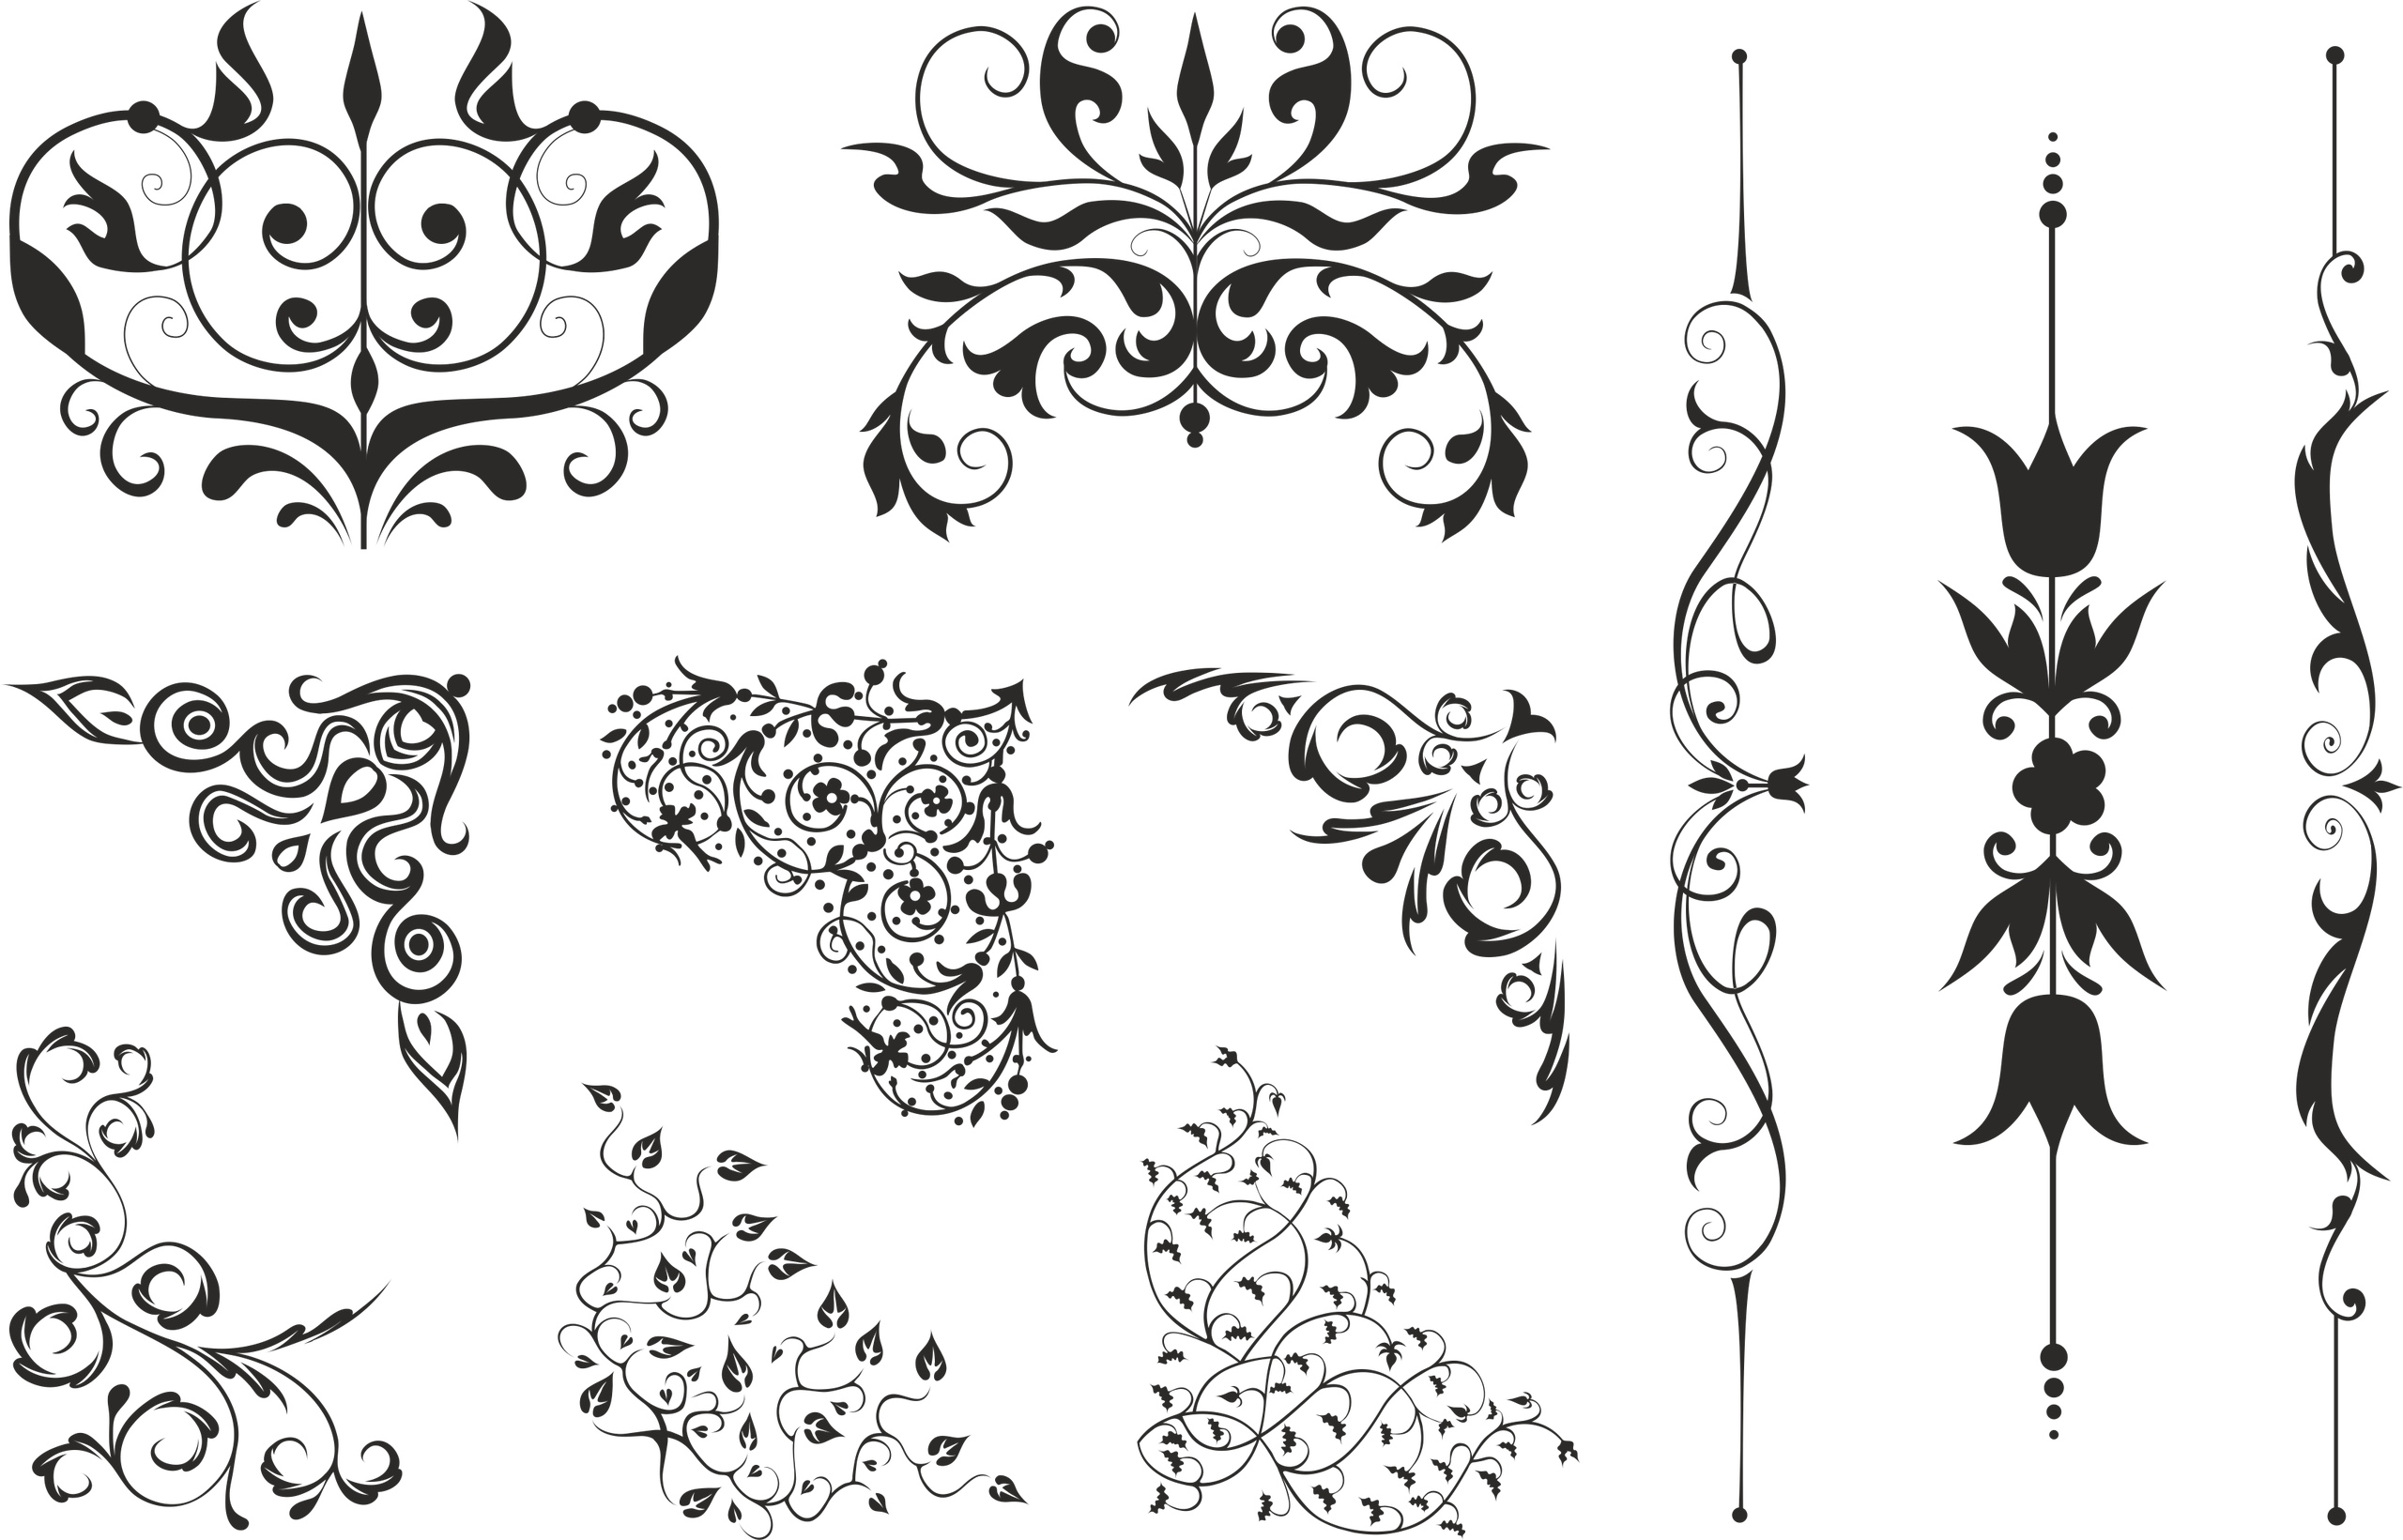 Floral Corners Swirl Free Vector Cdr Download 3axisco